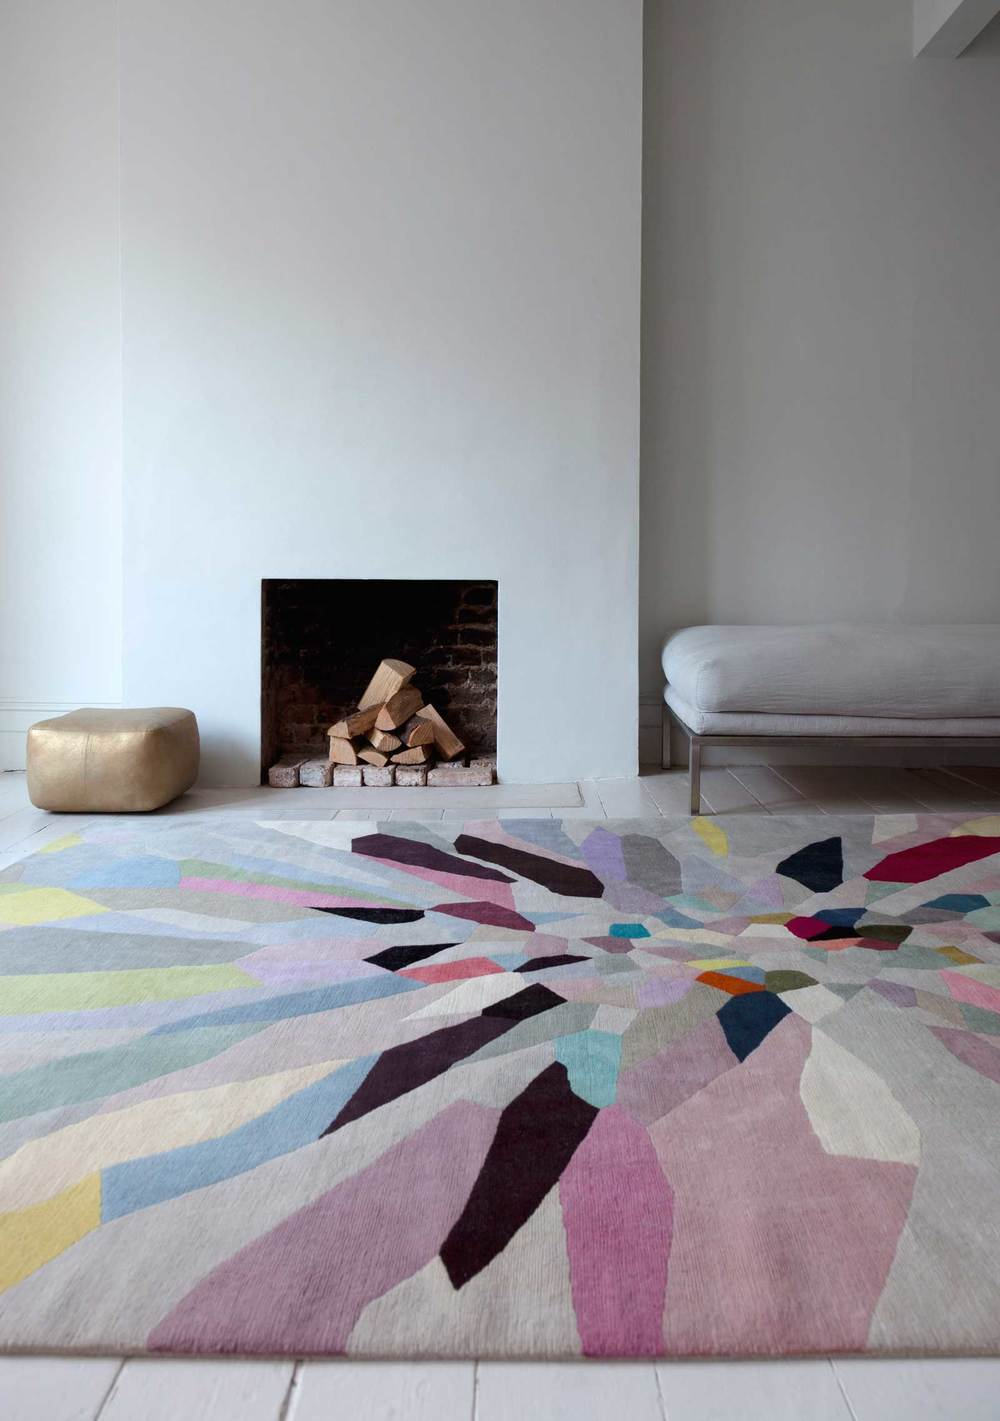 Zap by Fiona Curran at The Rug Company